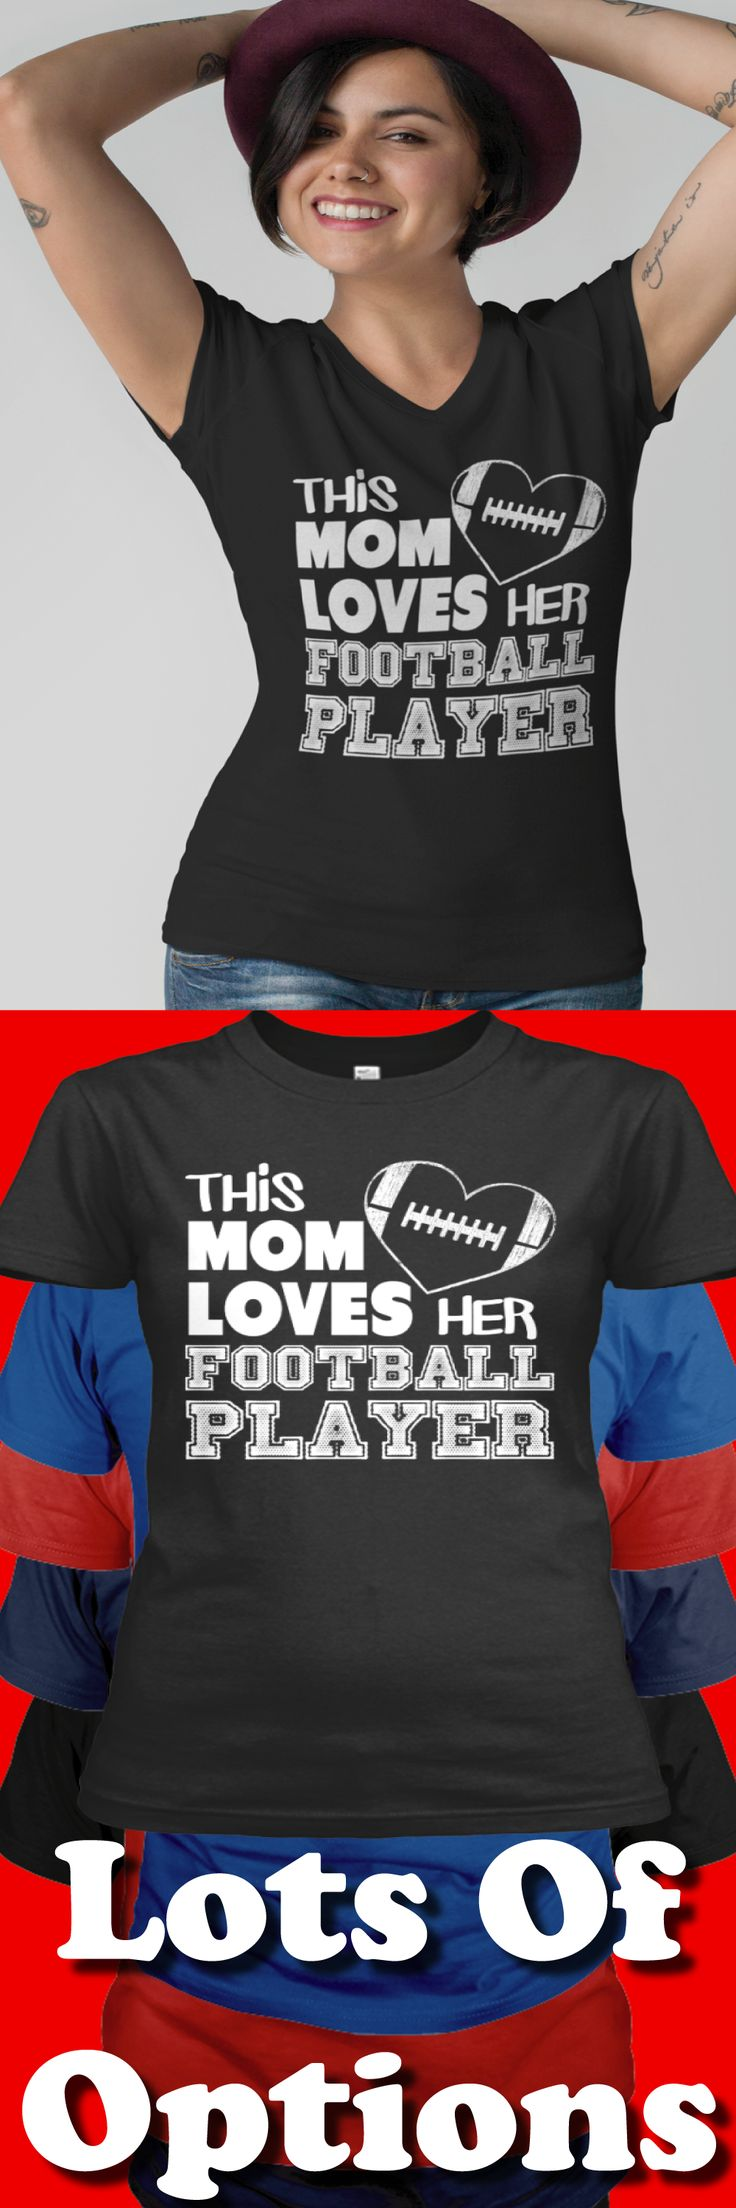 Football Mom: Are You A Football Mom? Love Your Football Player?  Great Football Mom Gift! Lots Of Sizes & Colors. Strict Limit Of 5 Shirts! Treat Yourself & Click Now! https://teespring.com/KF23-921